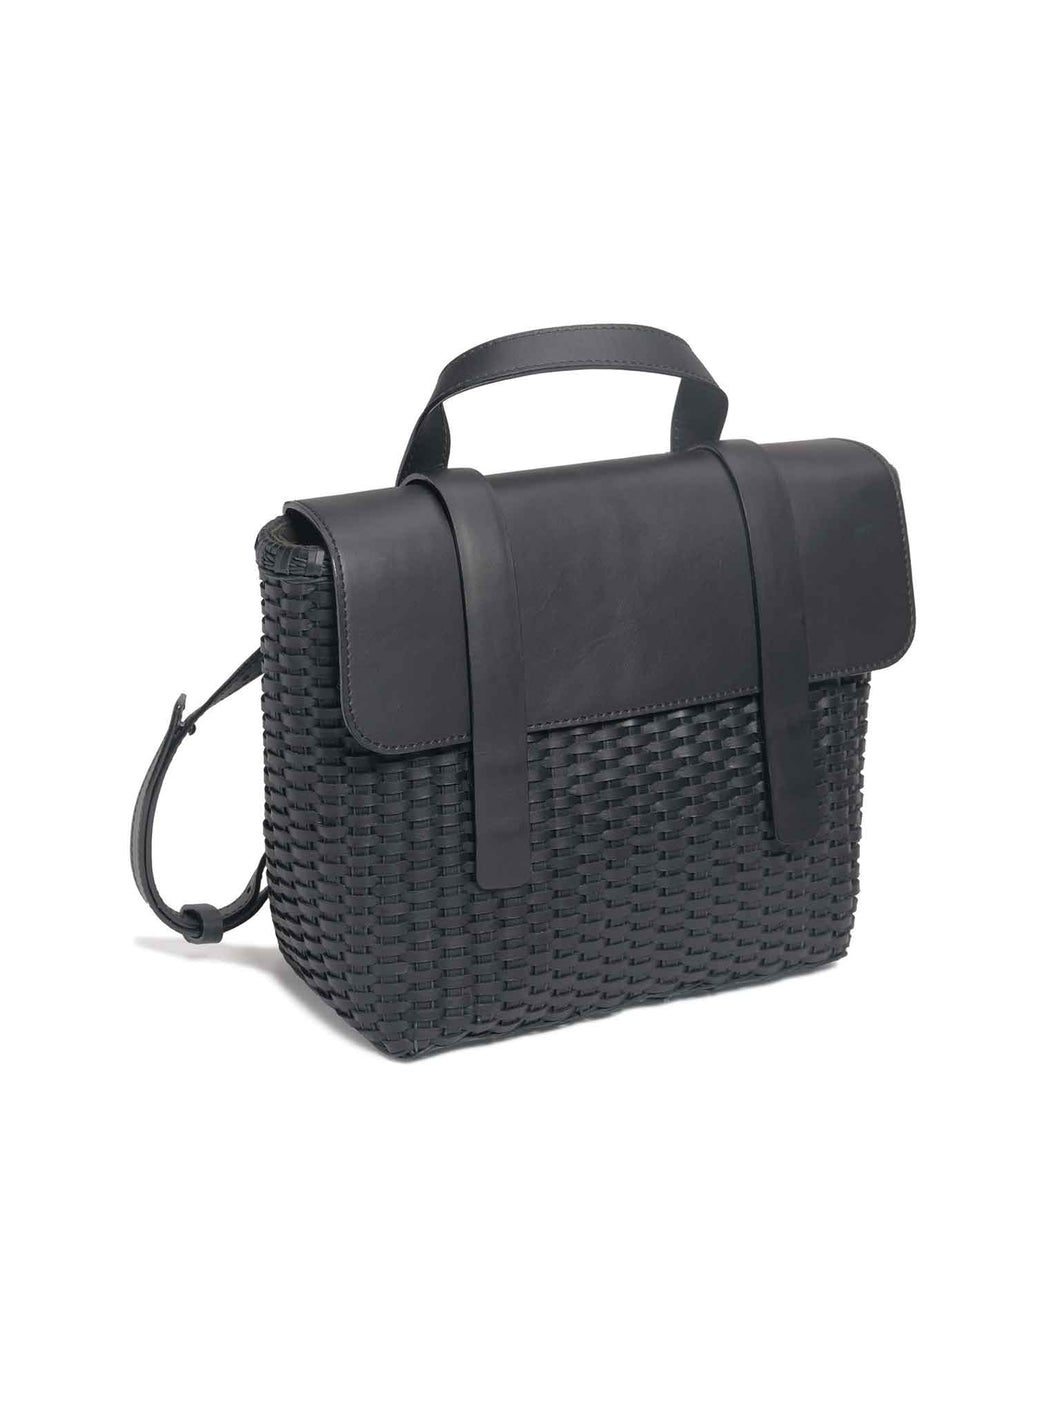 Black Leather Woven Freehand Bag